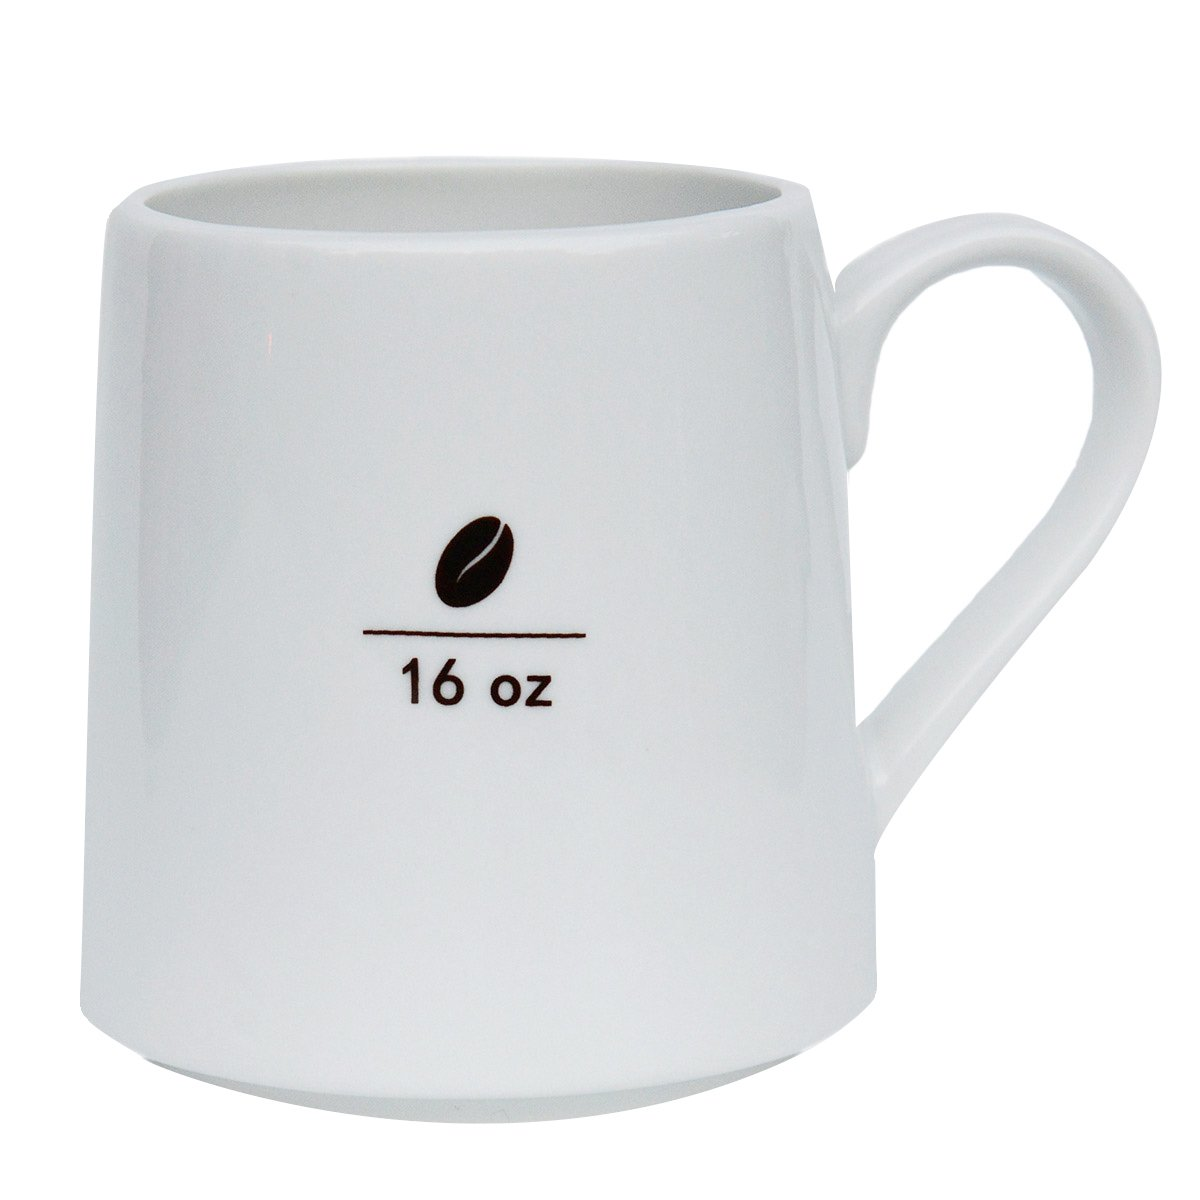 Mecraft -16 OZ Ceramic coffee Mug with coffee bean pattern,Smooth white layer with brown coffee bean pattern SYNCHKG105213